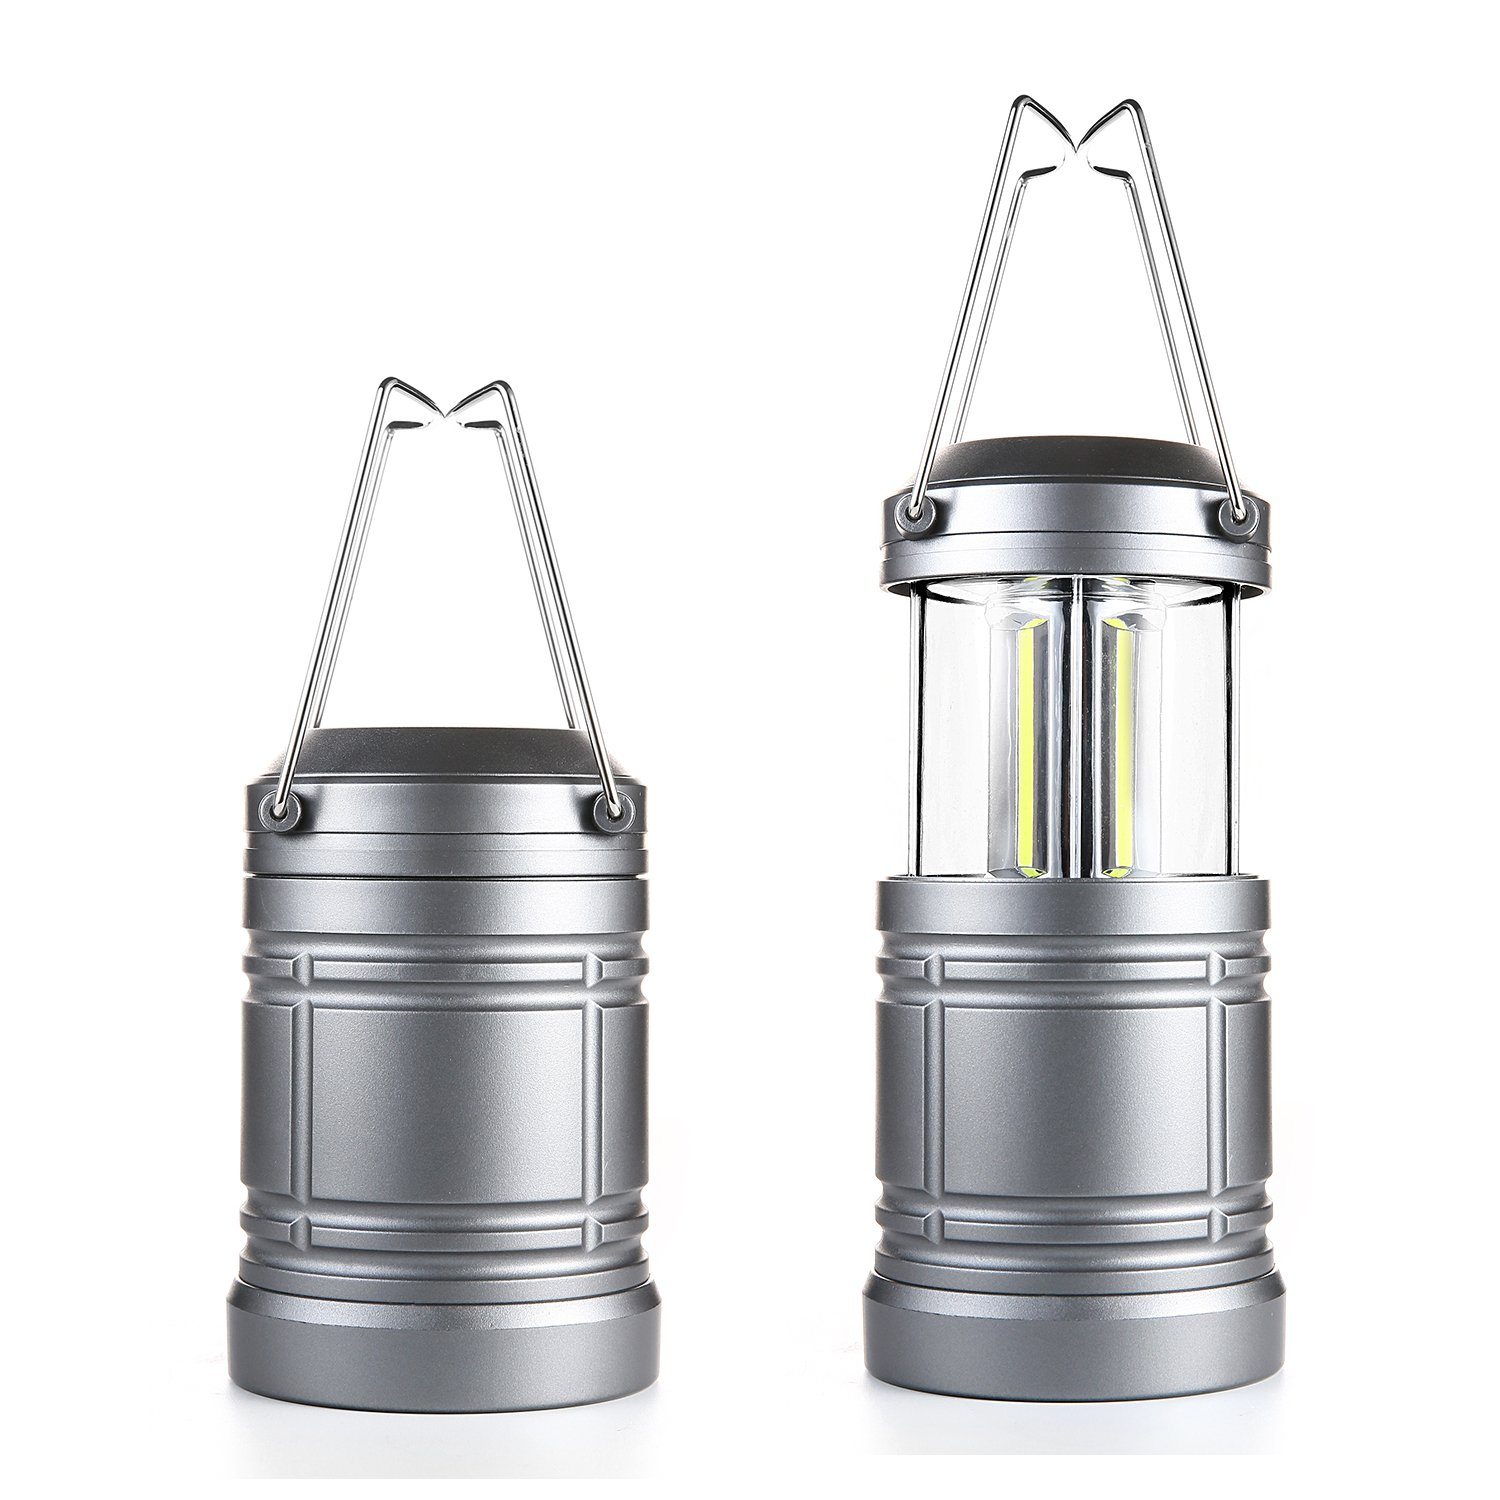 2Pcs Camping Lantern Military TacLight Lantern with Magnetic Base & Collapsible Ultra Bright Portable LED Torch by Miuree